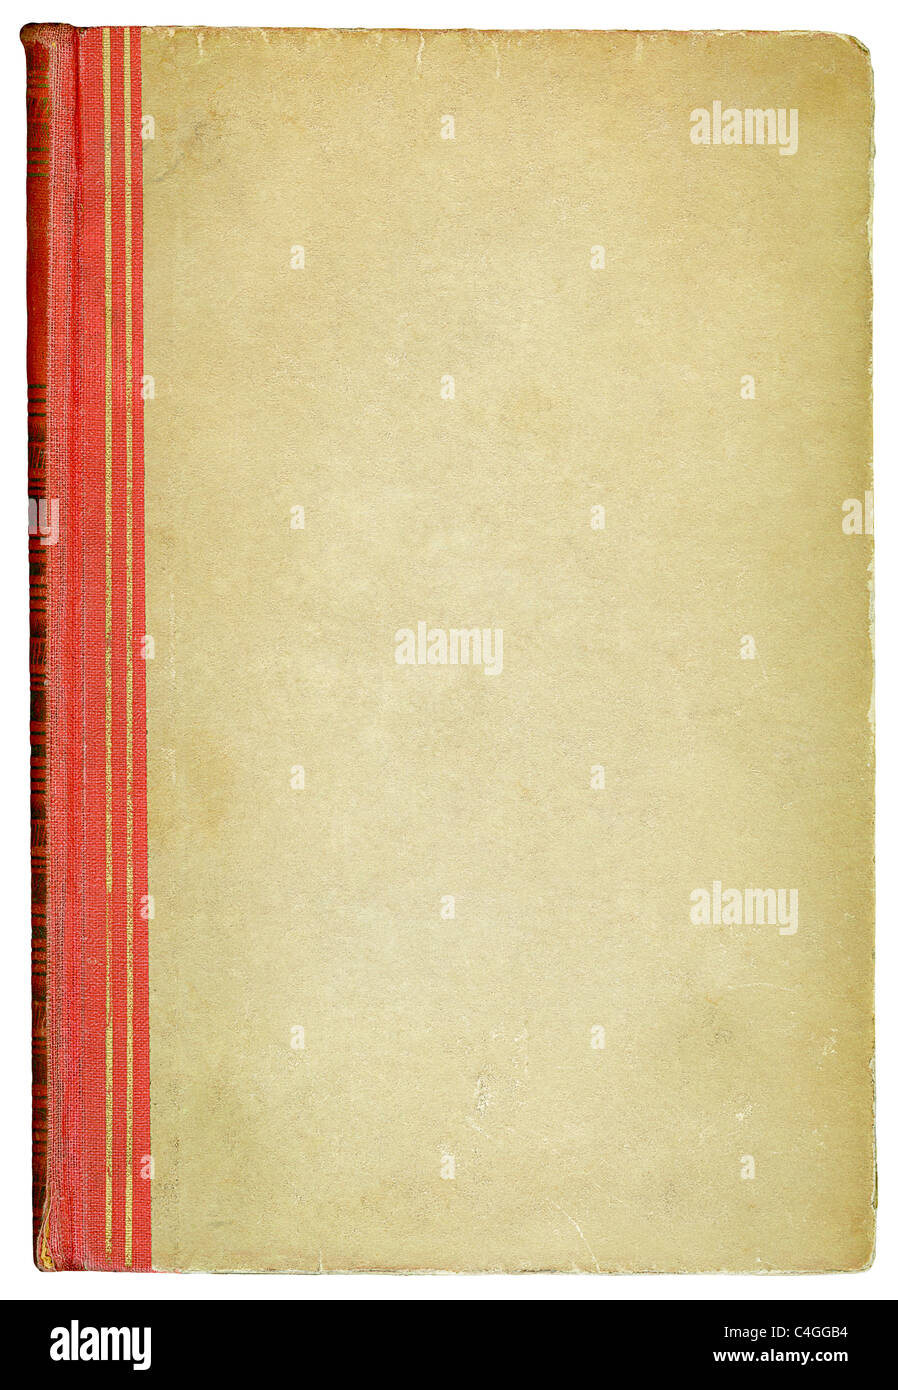 Old book cover - Stock Image